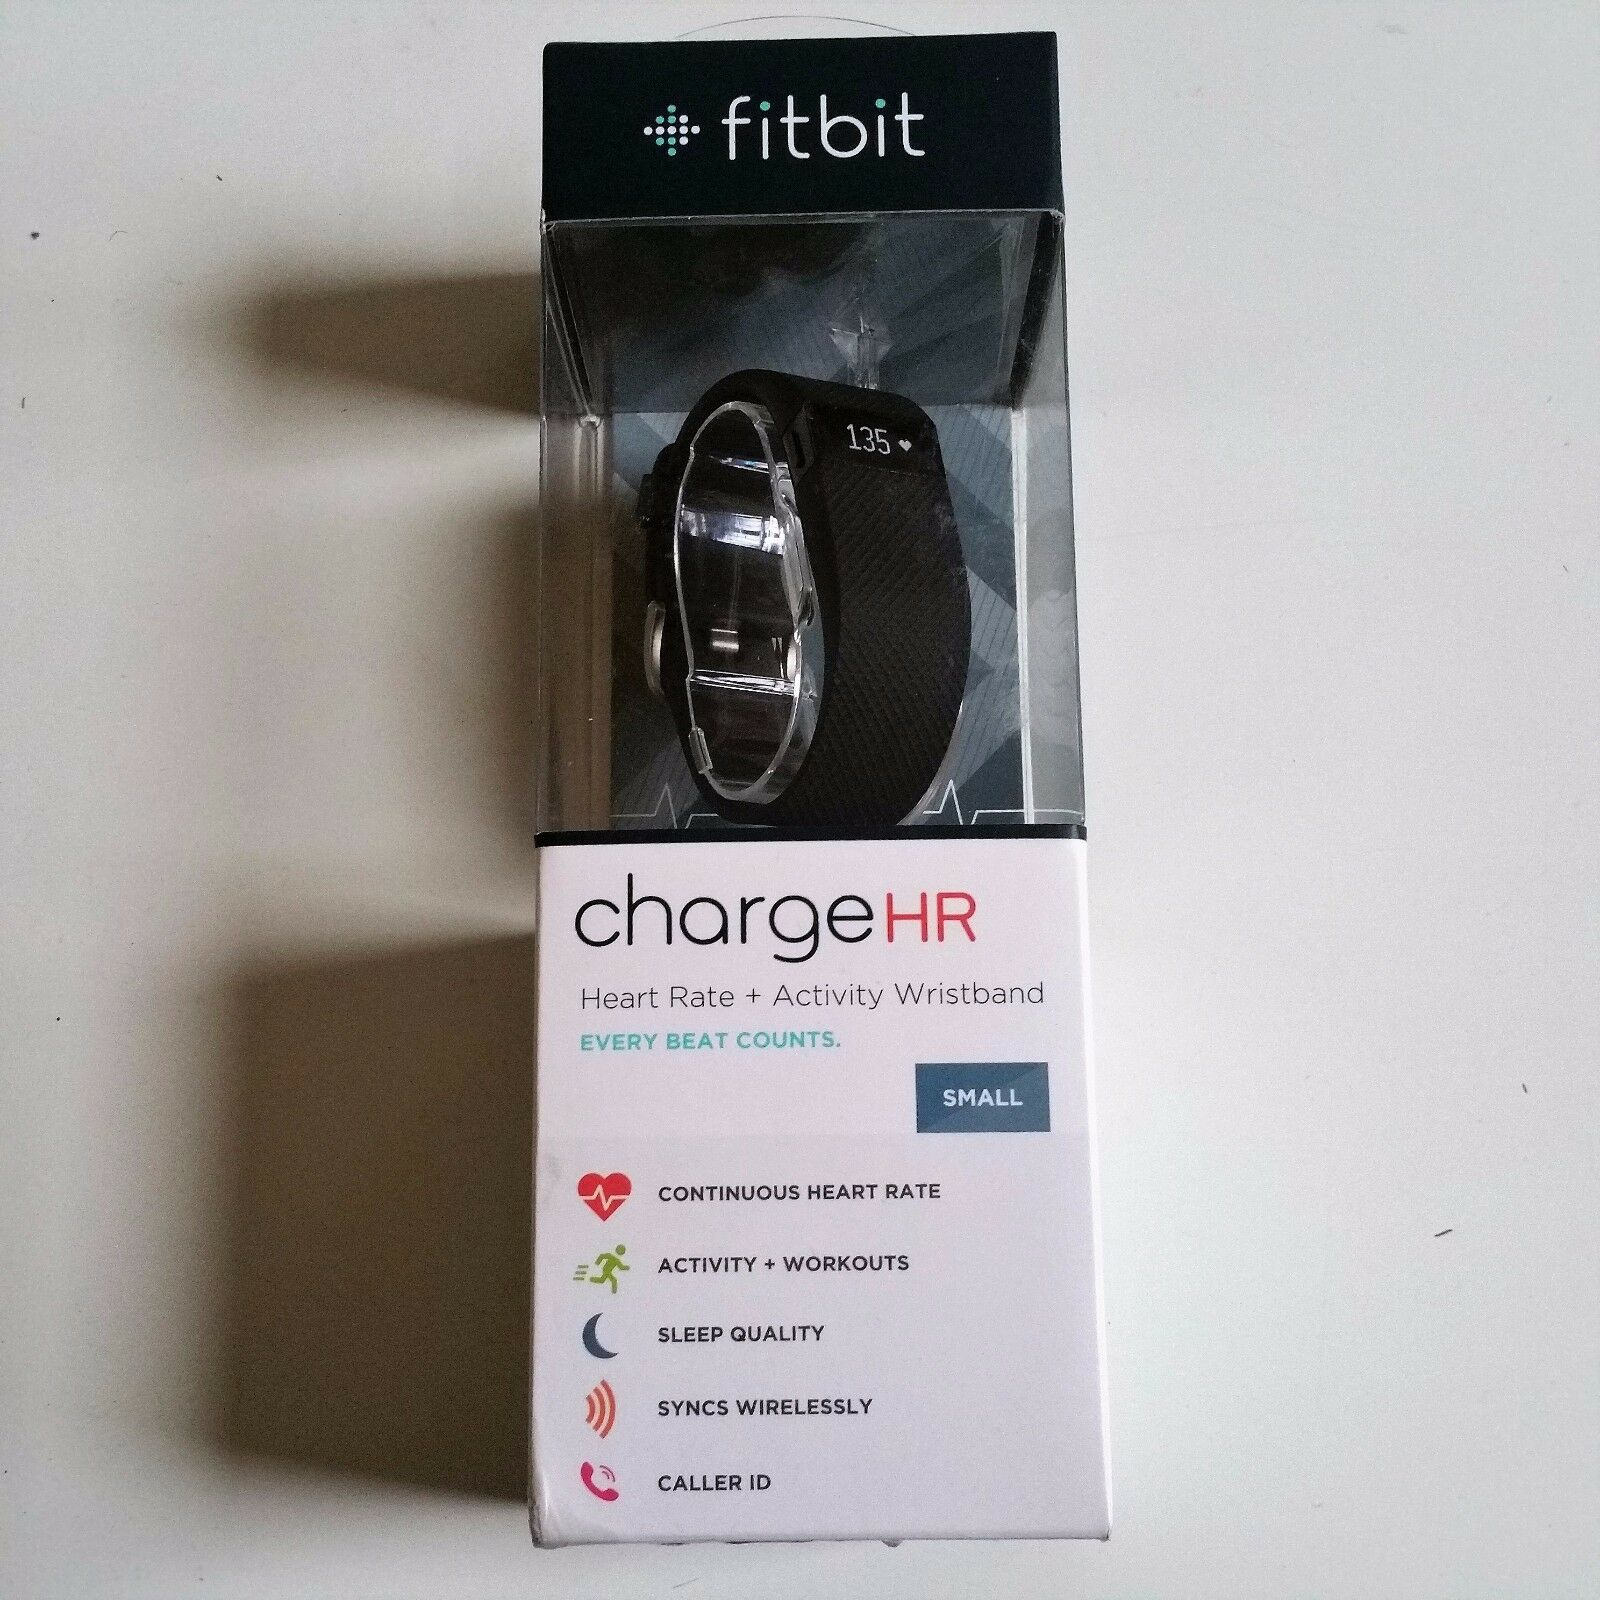 Fitbit ChargeHR Heart Rate & Fitness Activity Tracker Wristband Small Black New! activity black chargehr fitbit fitness heart rate small tracker wristband